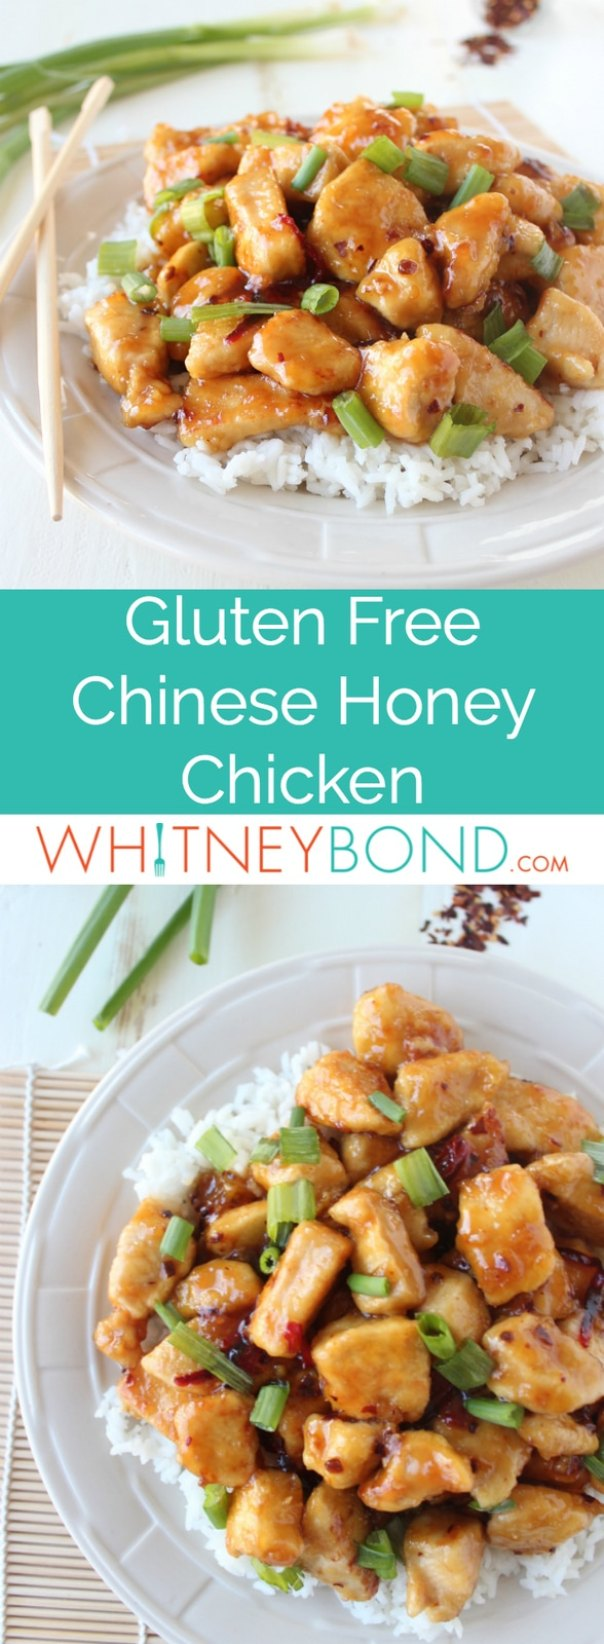 Chinese honey chicken gluten free recipes whitneybond this healthier better than takeout recipe for chinese honey chicken is easy to forumfinder Choice Image